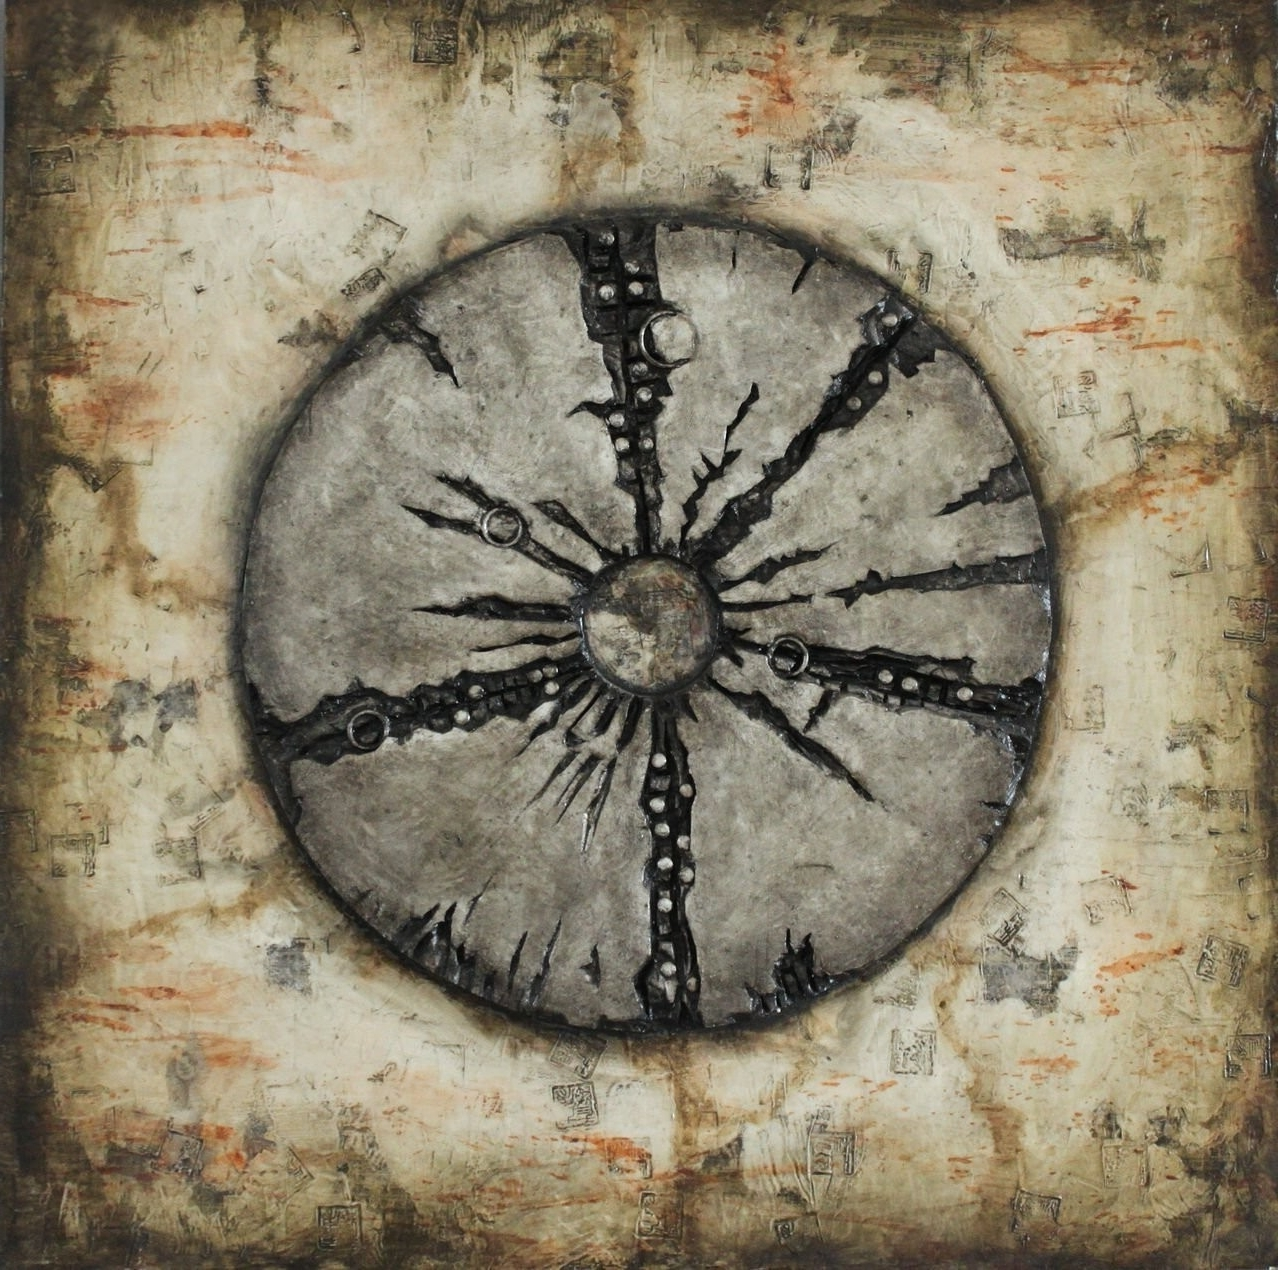 Rustic Metal Wall Art Intended For Most Up To Date Square Rustic Wood Wall Art – 3D Wheel Design – Metal Wall Art (View 12 of 20)